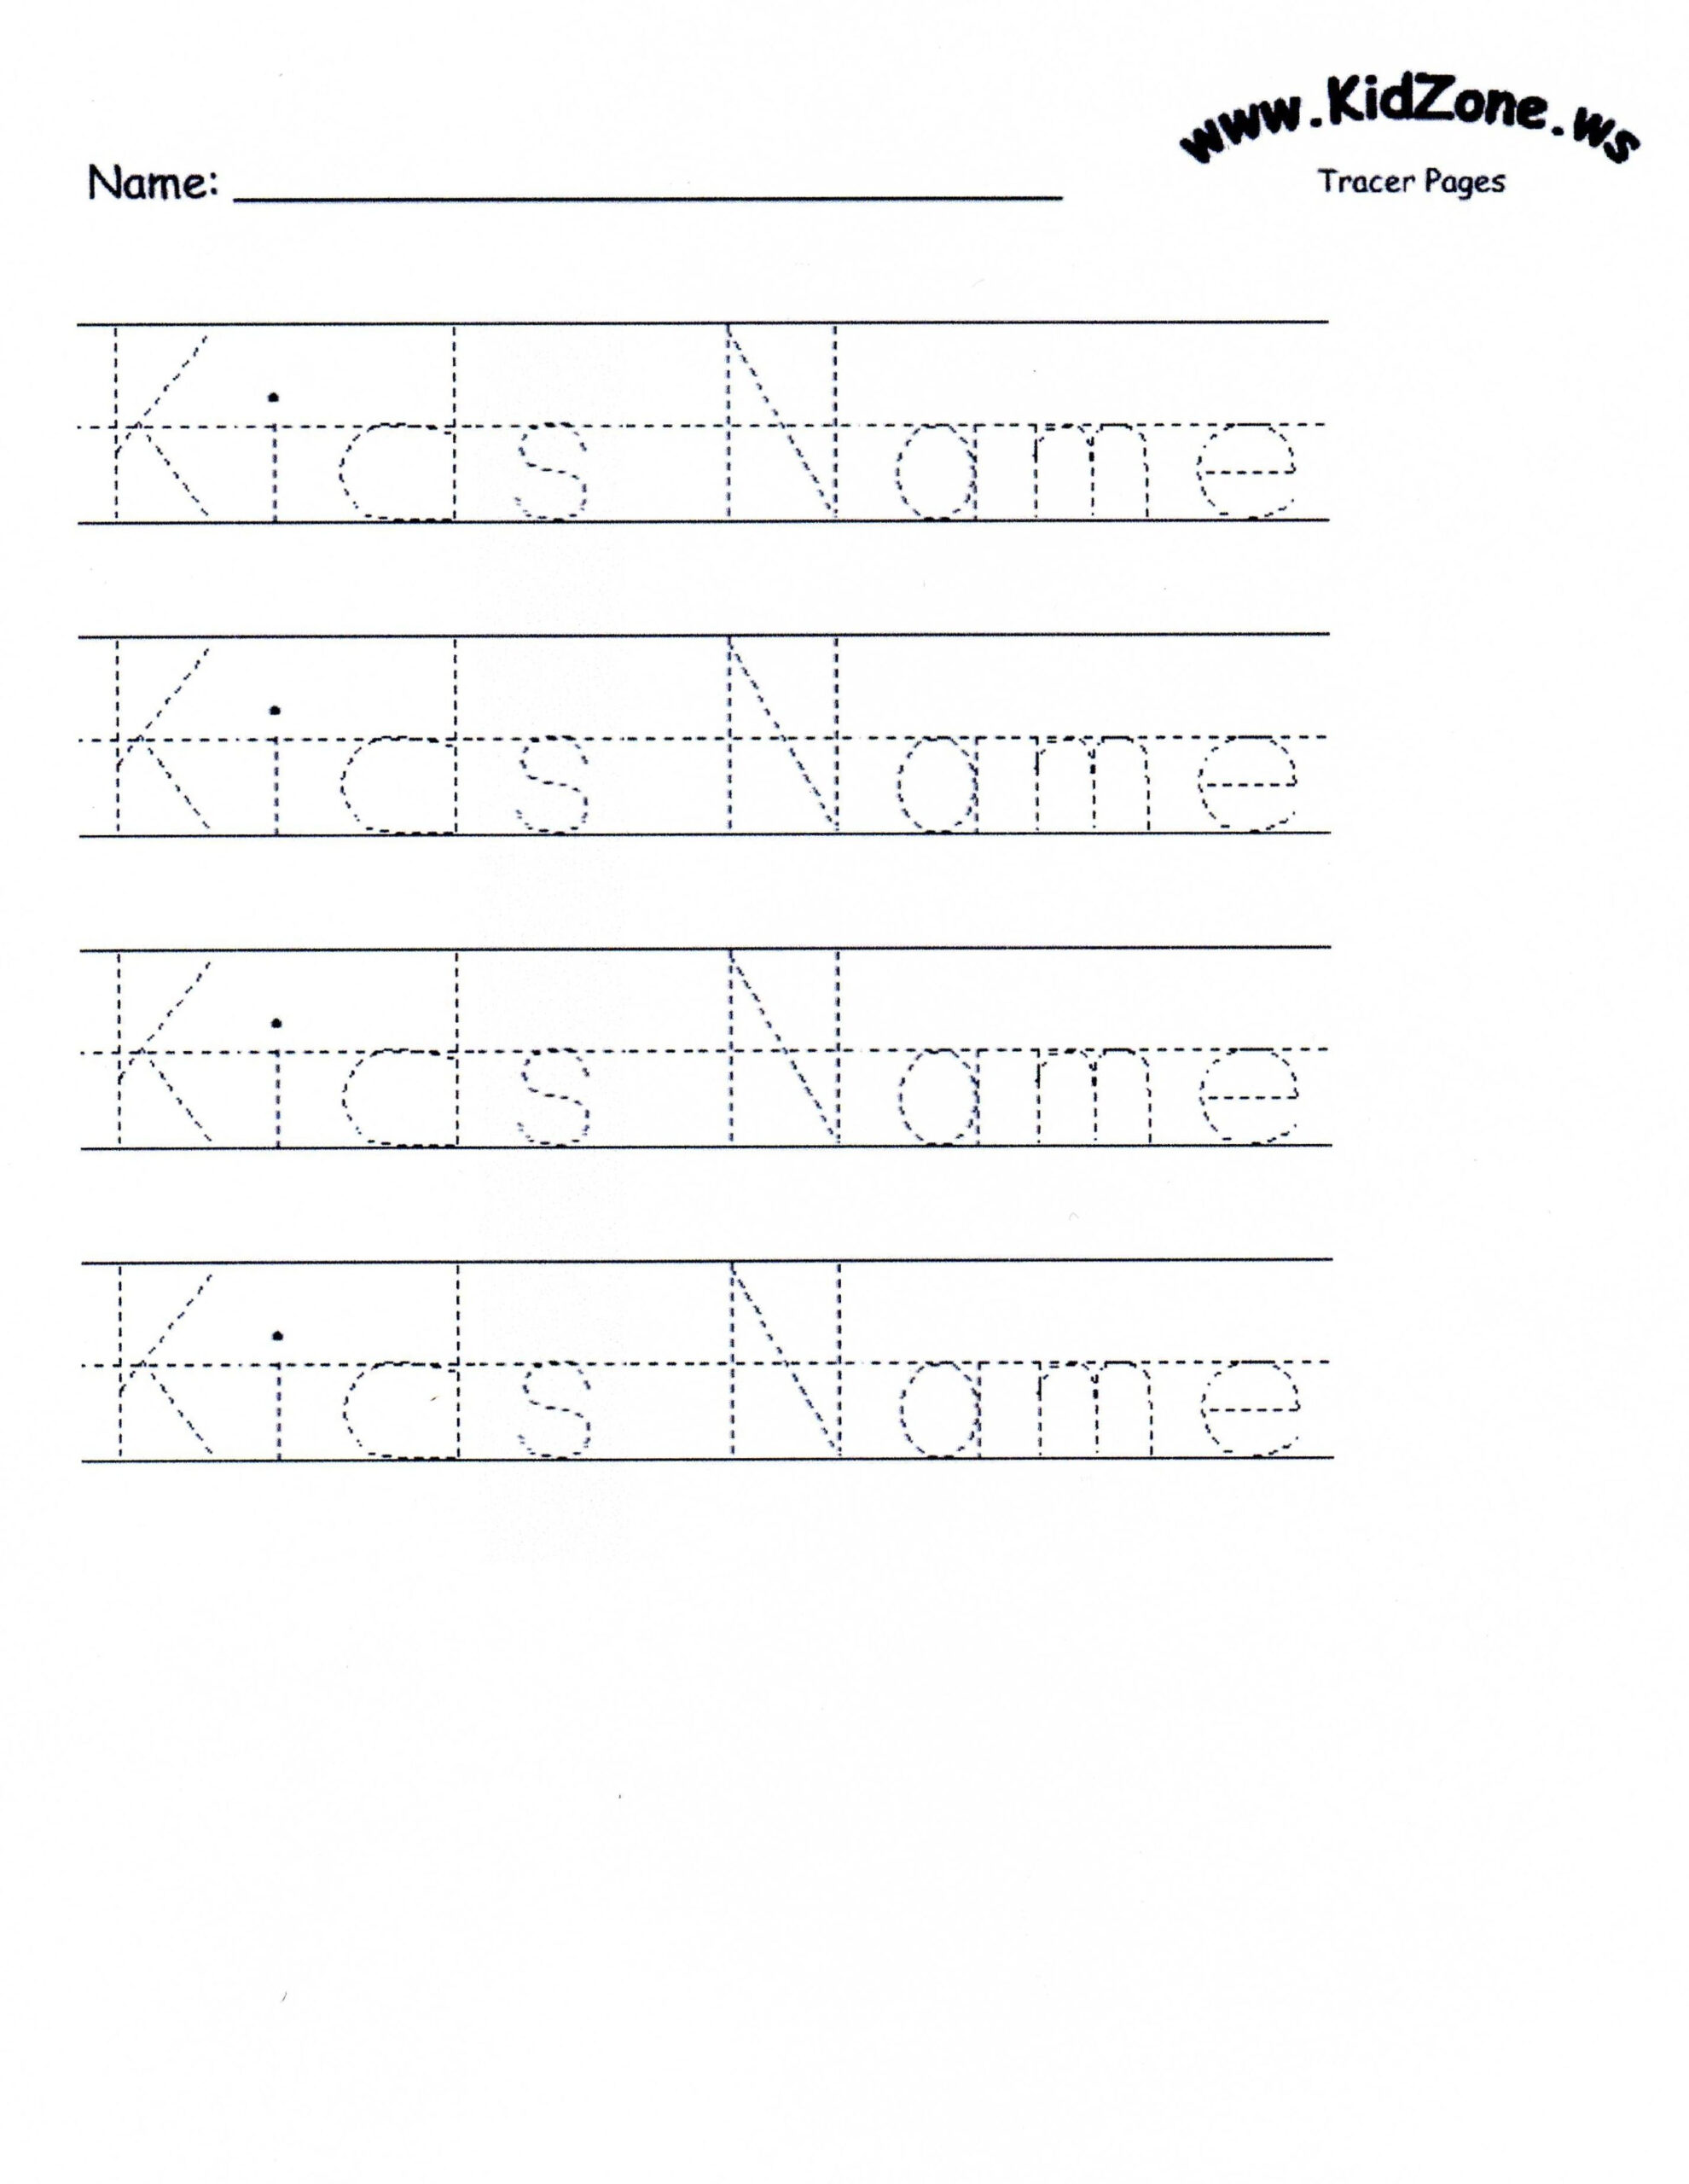 Kidzone Cursive Writing Worksheets with Name Tracing Victorian Cursive